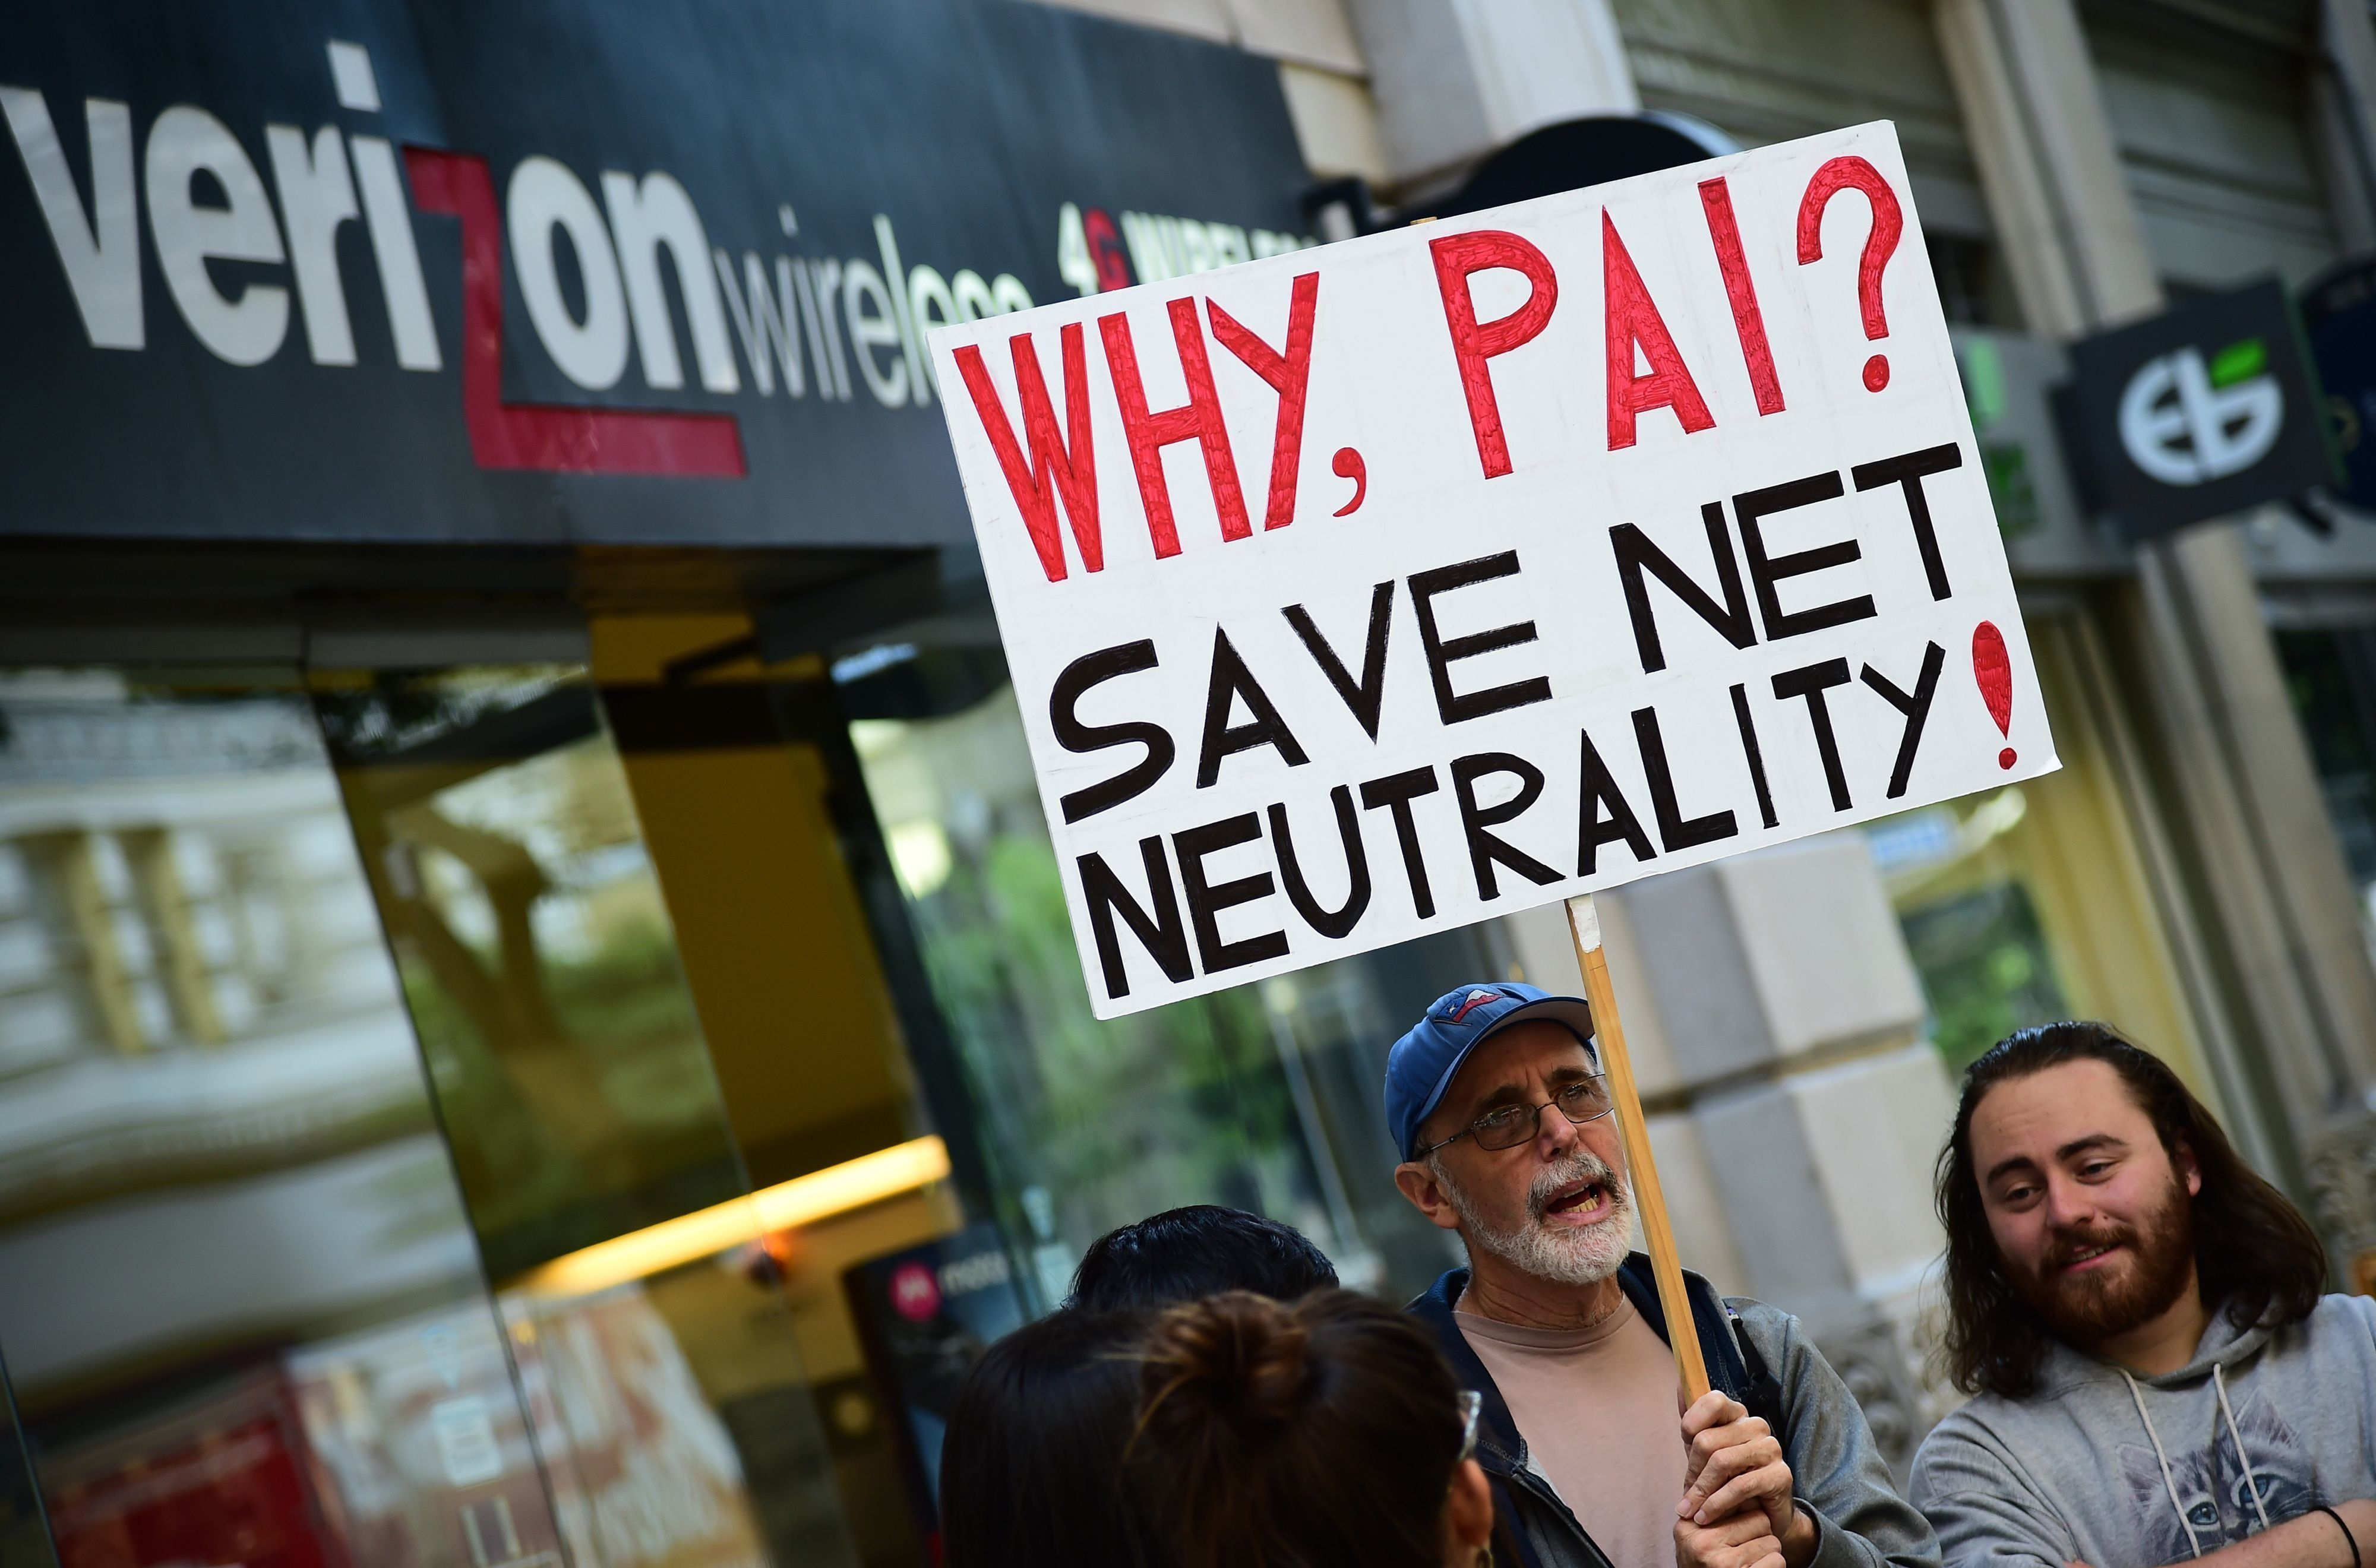 A small group of protestors supporting net neutrality protest against a plan by Federal Communications Commission (FCC) head Ajit Pai, during a protest outside a Verizon store on December 7, 2017 in Los Angeles, California.   Demonstrations in support of net neutrality are planned nation-wide at hundreds of Verizon stores and other venues. / AFP PHOTO / Robyn Beck        (Photo credit should read ROBYN BECK/AFP/Getty Images)